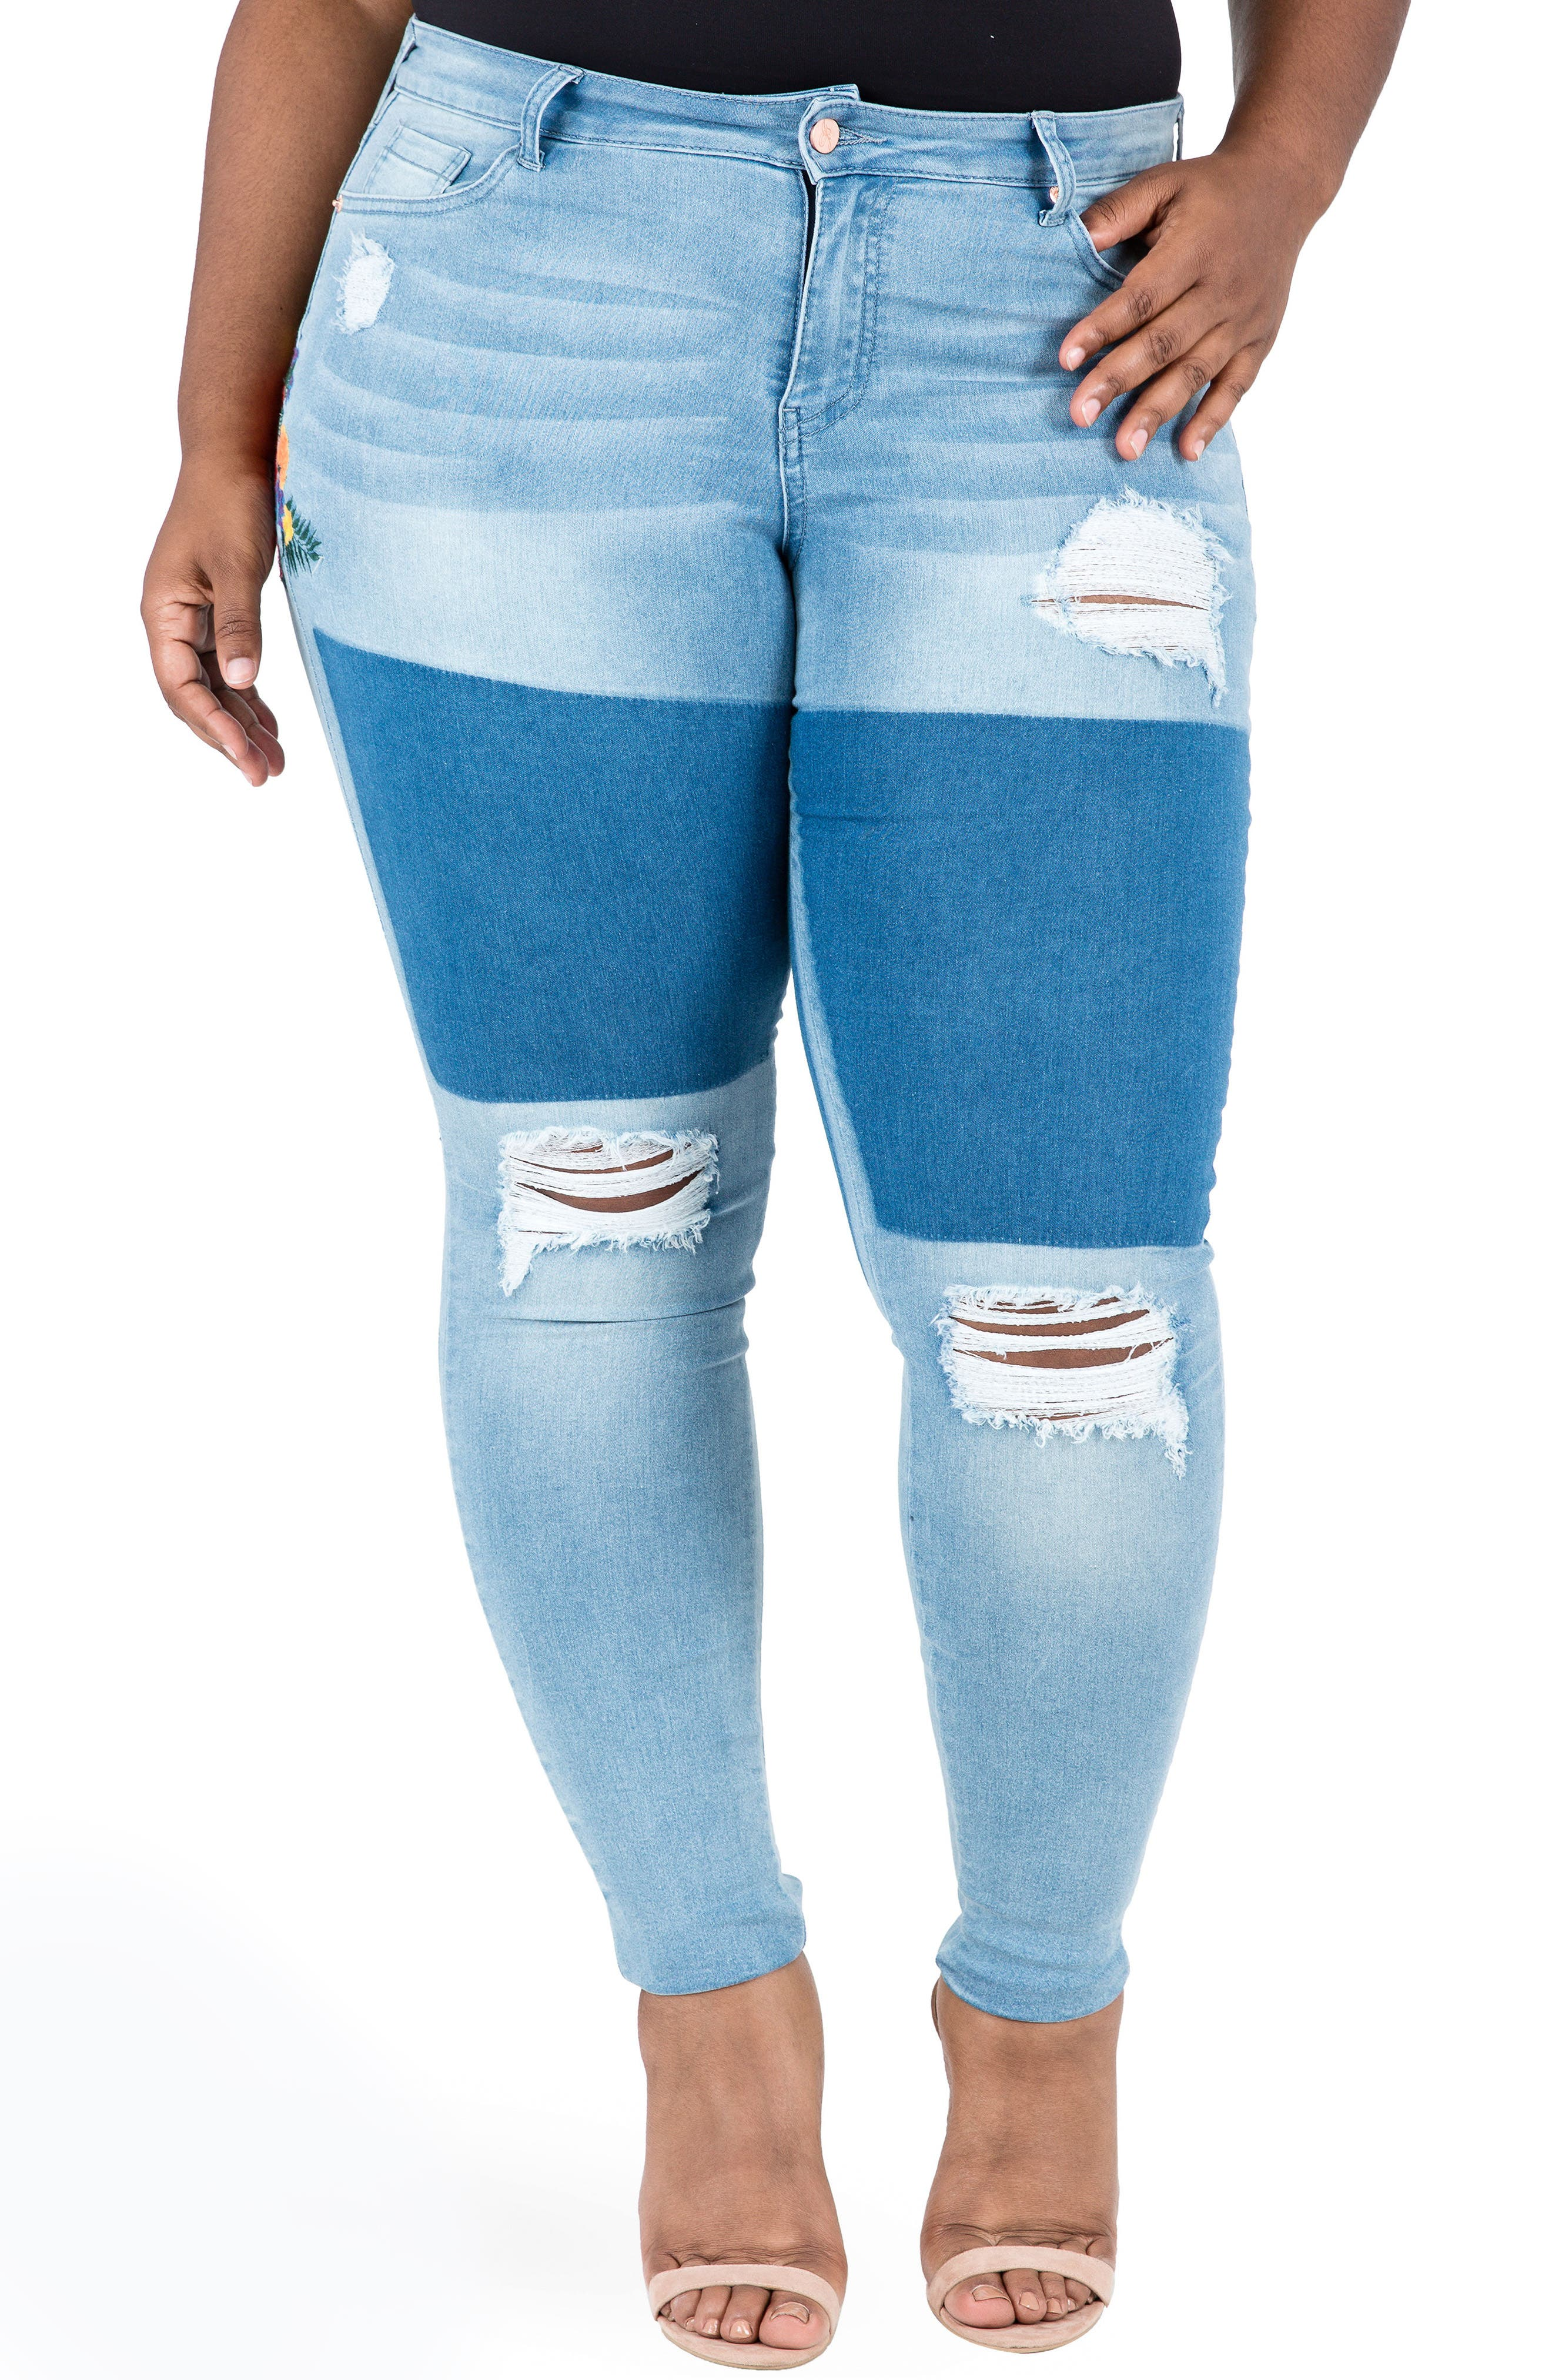 Plus Women's Poetic Justice Madison Ripped & Embroidered Skinny Jeans